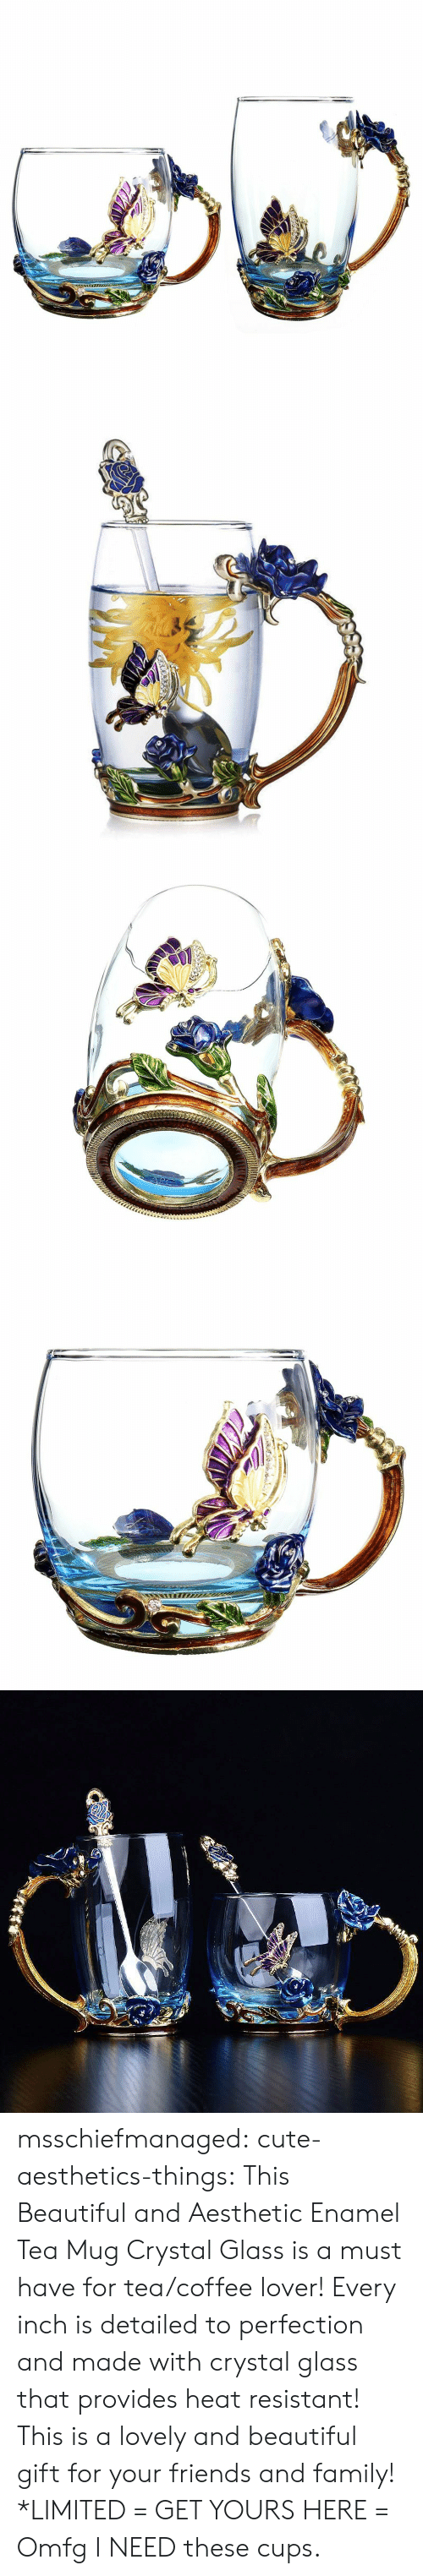 lover: msschiefmanaged: cute-aesthetics-things:  This Beautiful and Aesthetic Enamel Tea Mug Crystal Glass is a must have for tea/coffee lover! Every inch is detailed to perfection and made with crystal glass that provides heat resistant! This is a lovely and beautiful gift for your friends and family! *LIMITED = GET YOURS HERE =   Omfg I NEED these cups.